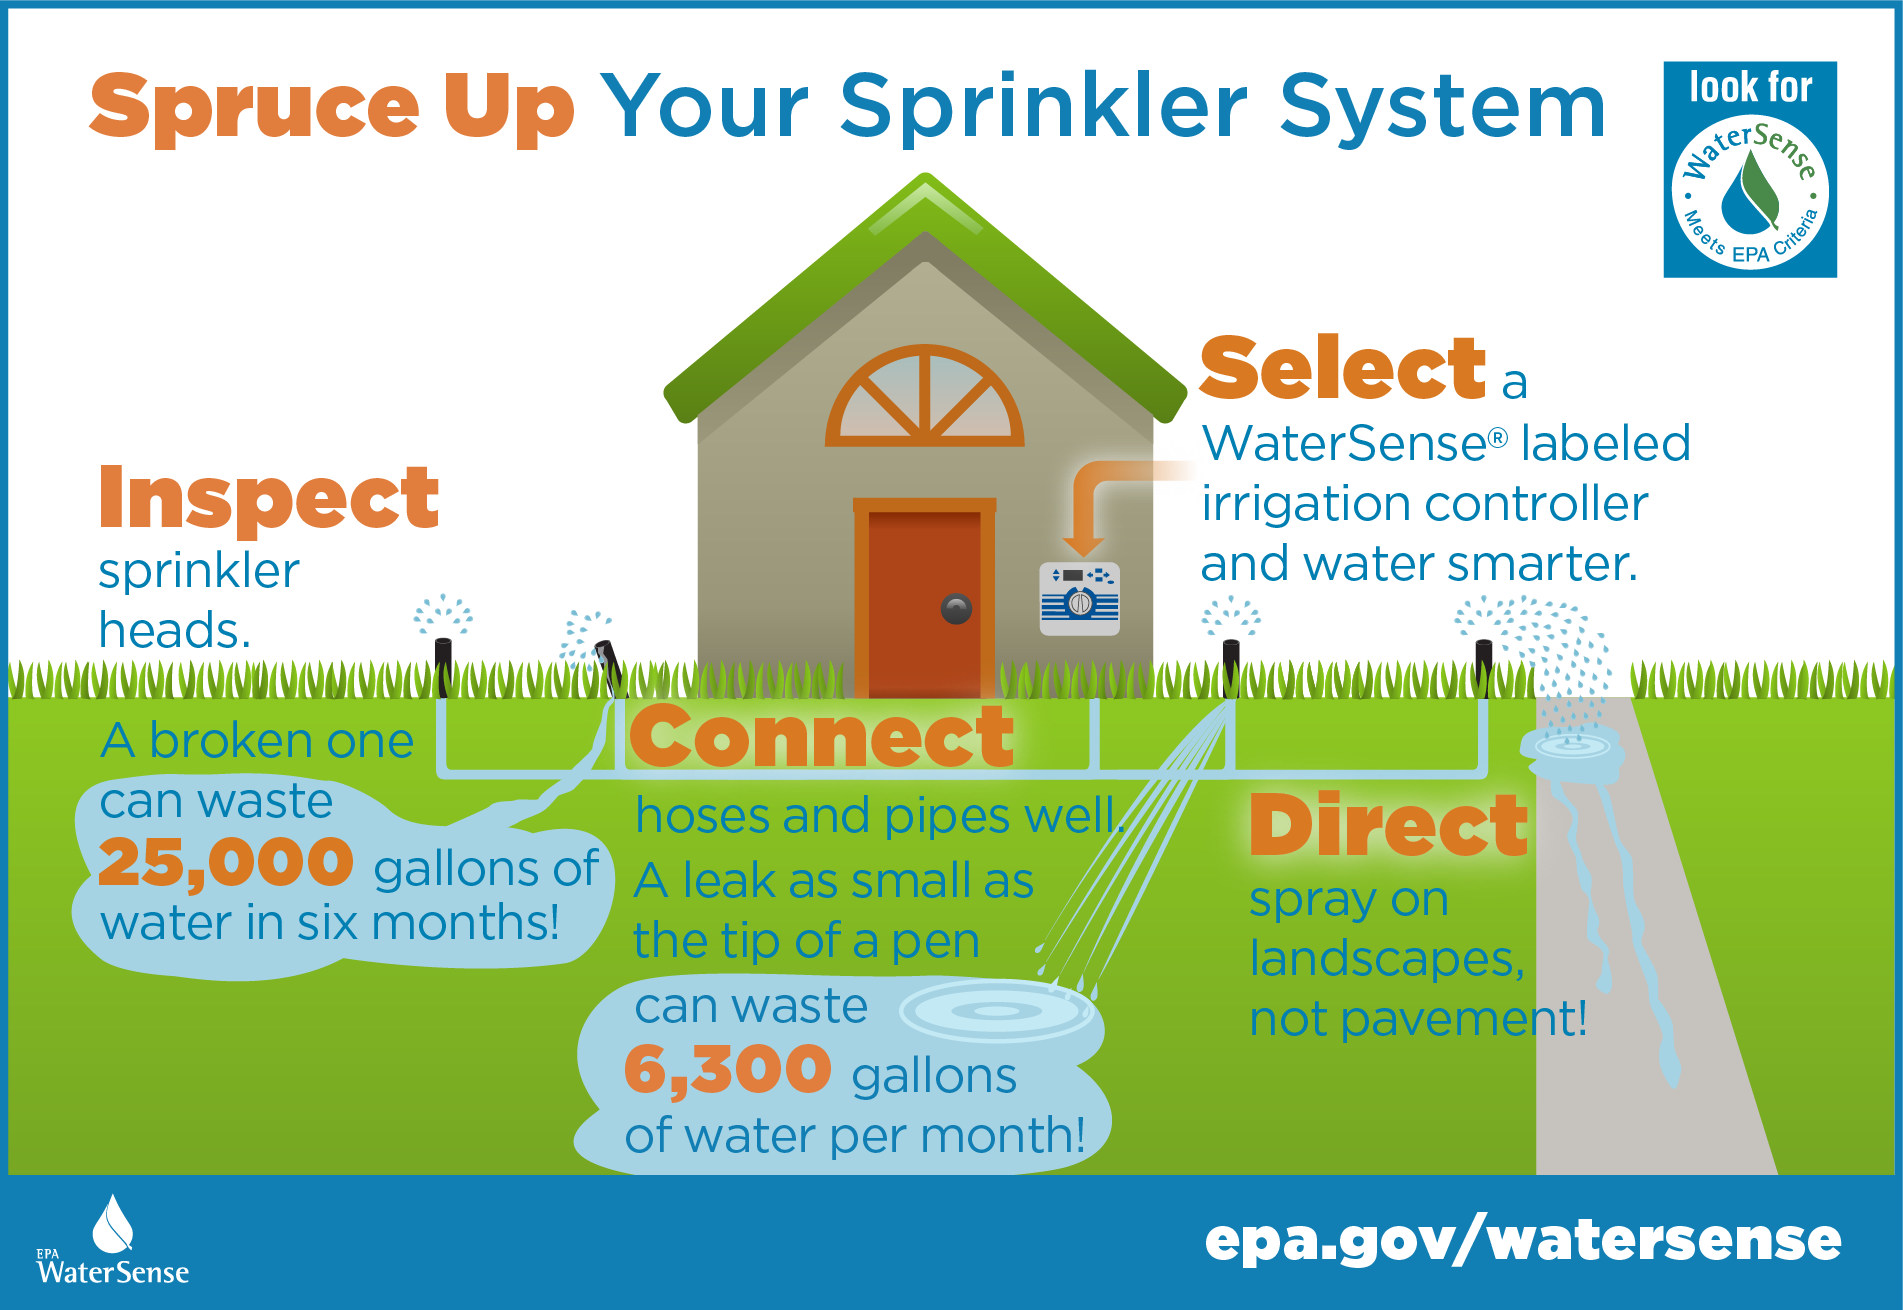 Spruce up your sprinkler system